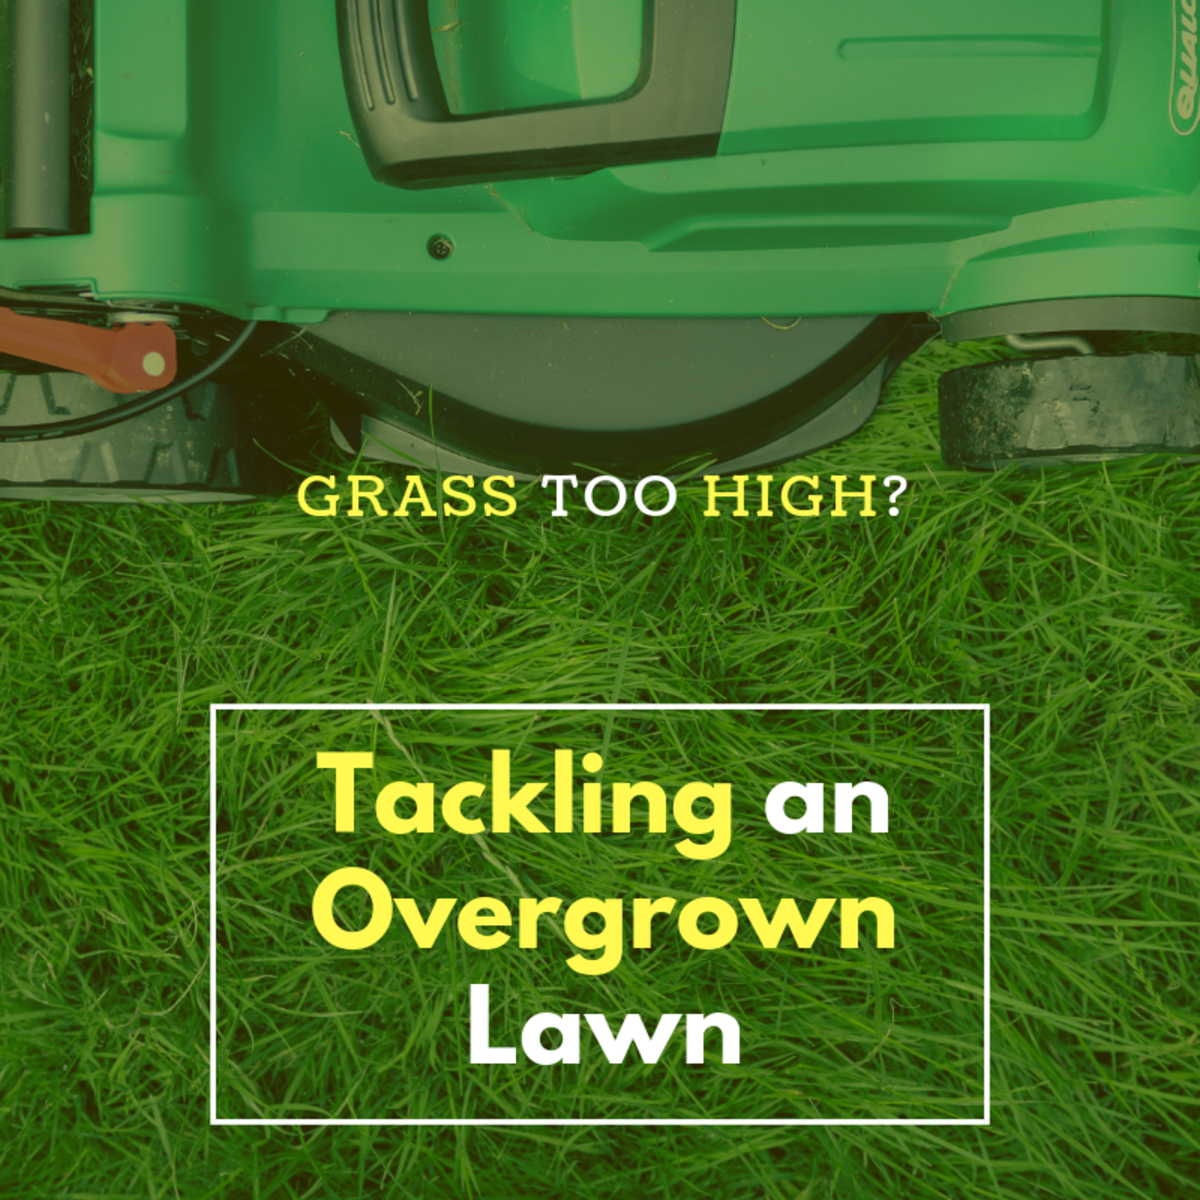 Lawn Too High? How to Cut an Overgrown Lawn